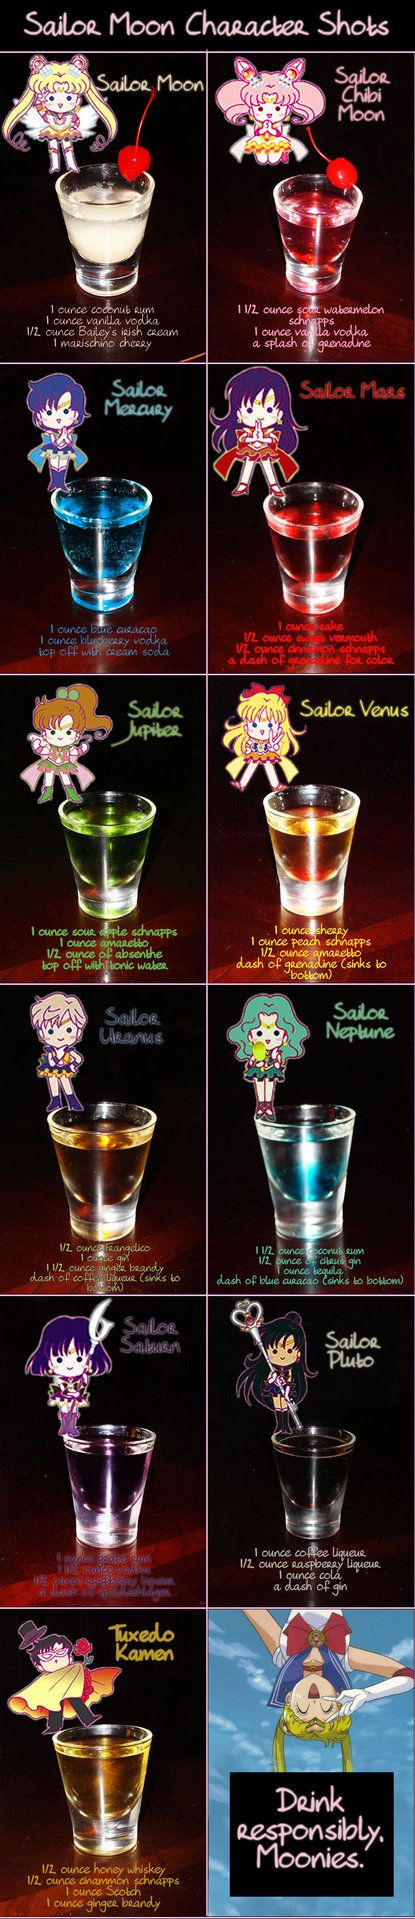 Sailor Moon Character Shots by Sillabub429